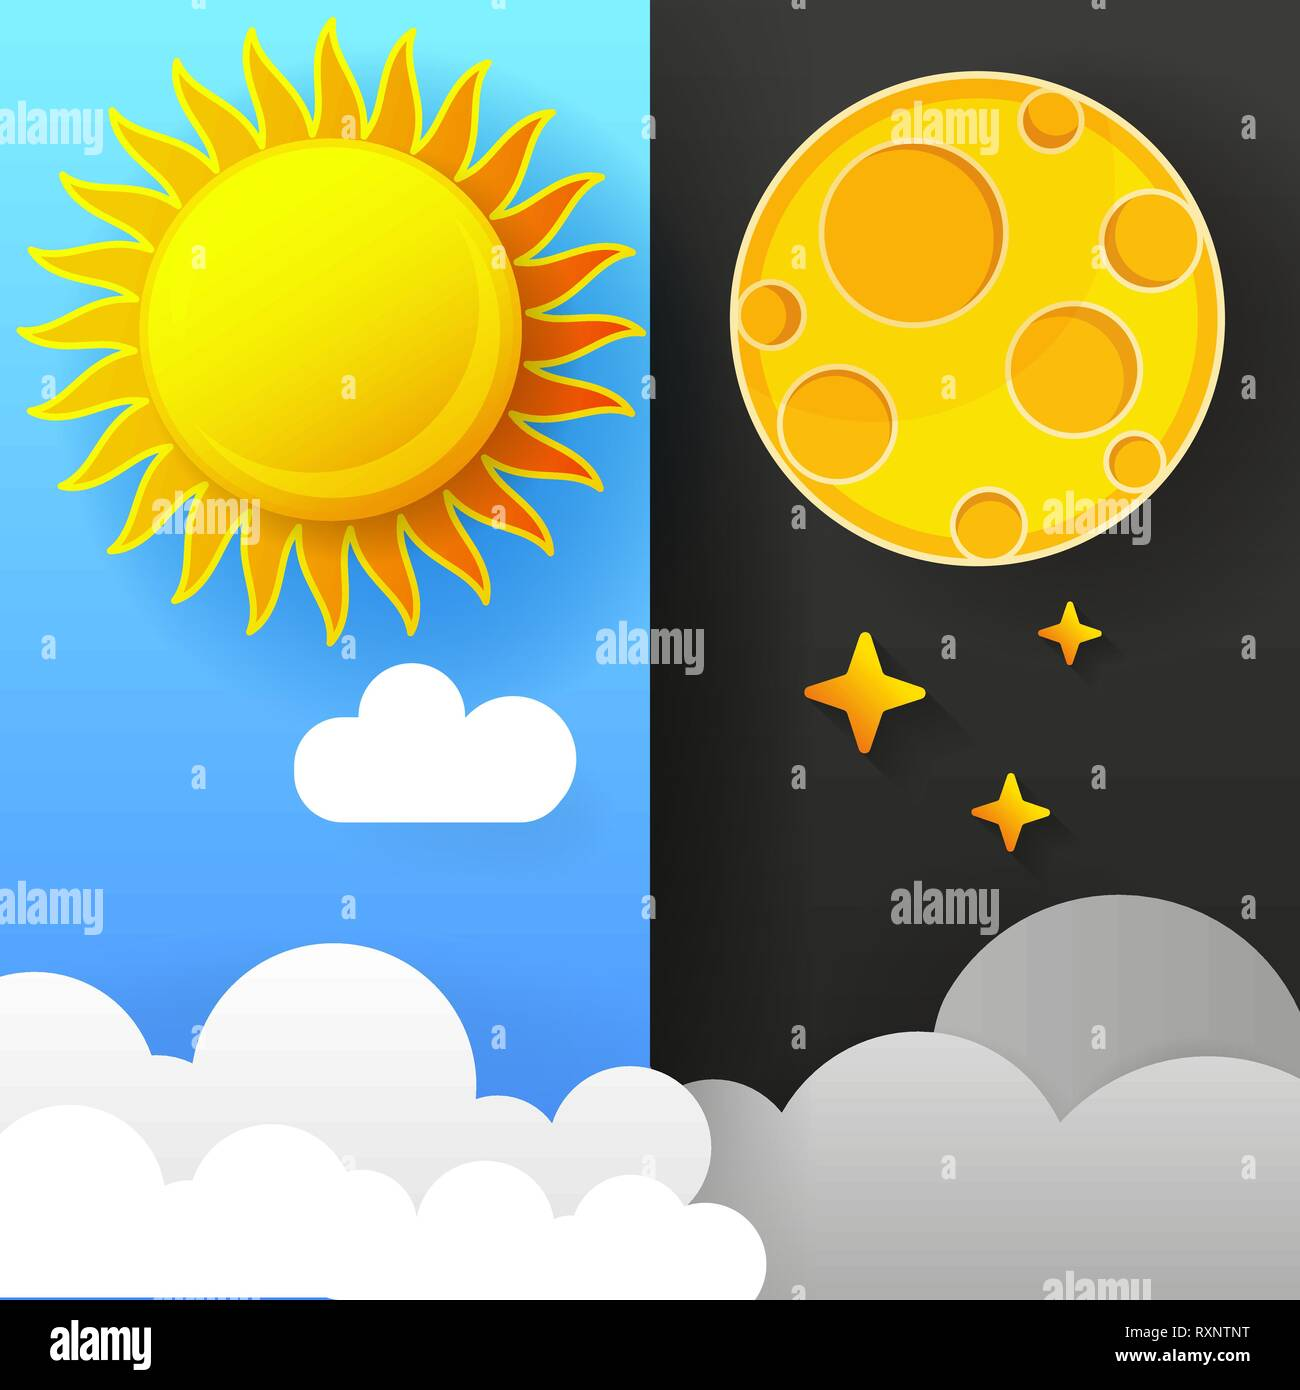 Vector Illustration Of Day And Night. Day Night Concept, Sun And Moon - Stock Vector